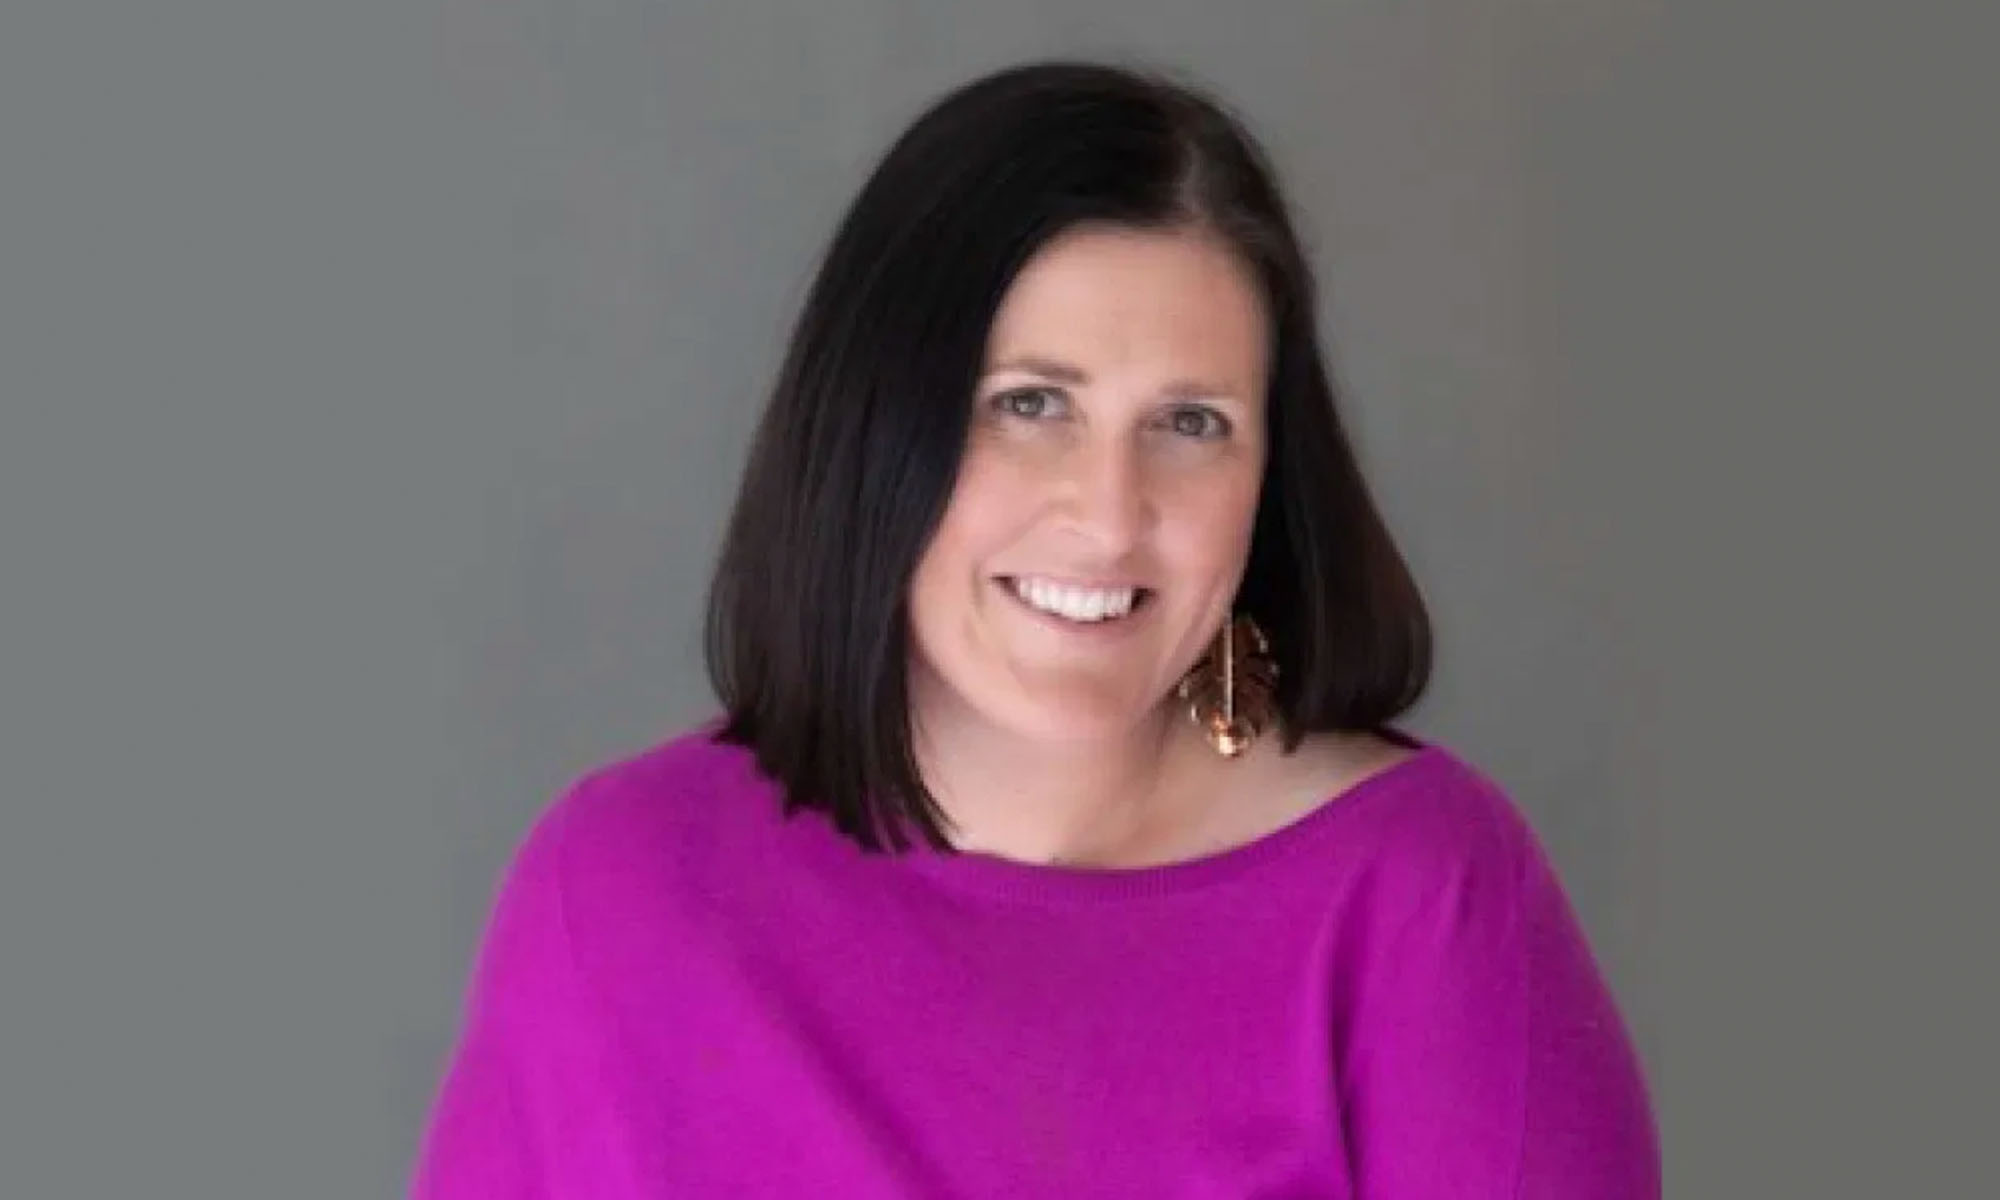 FCM Meetings & Events Australia appoints new GM